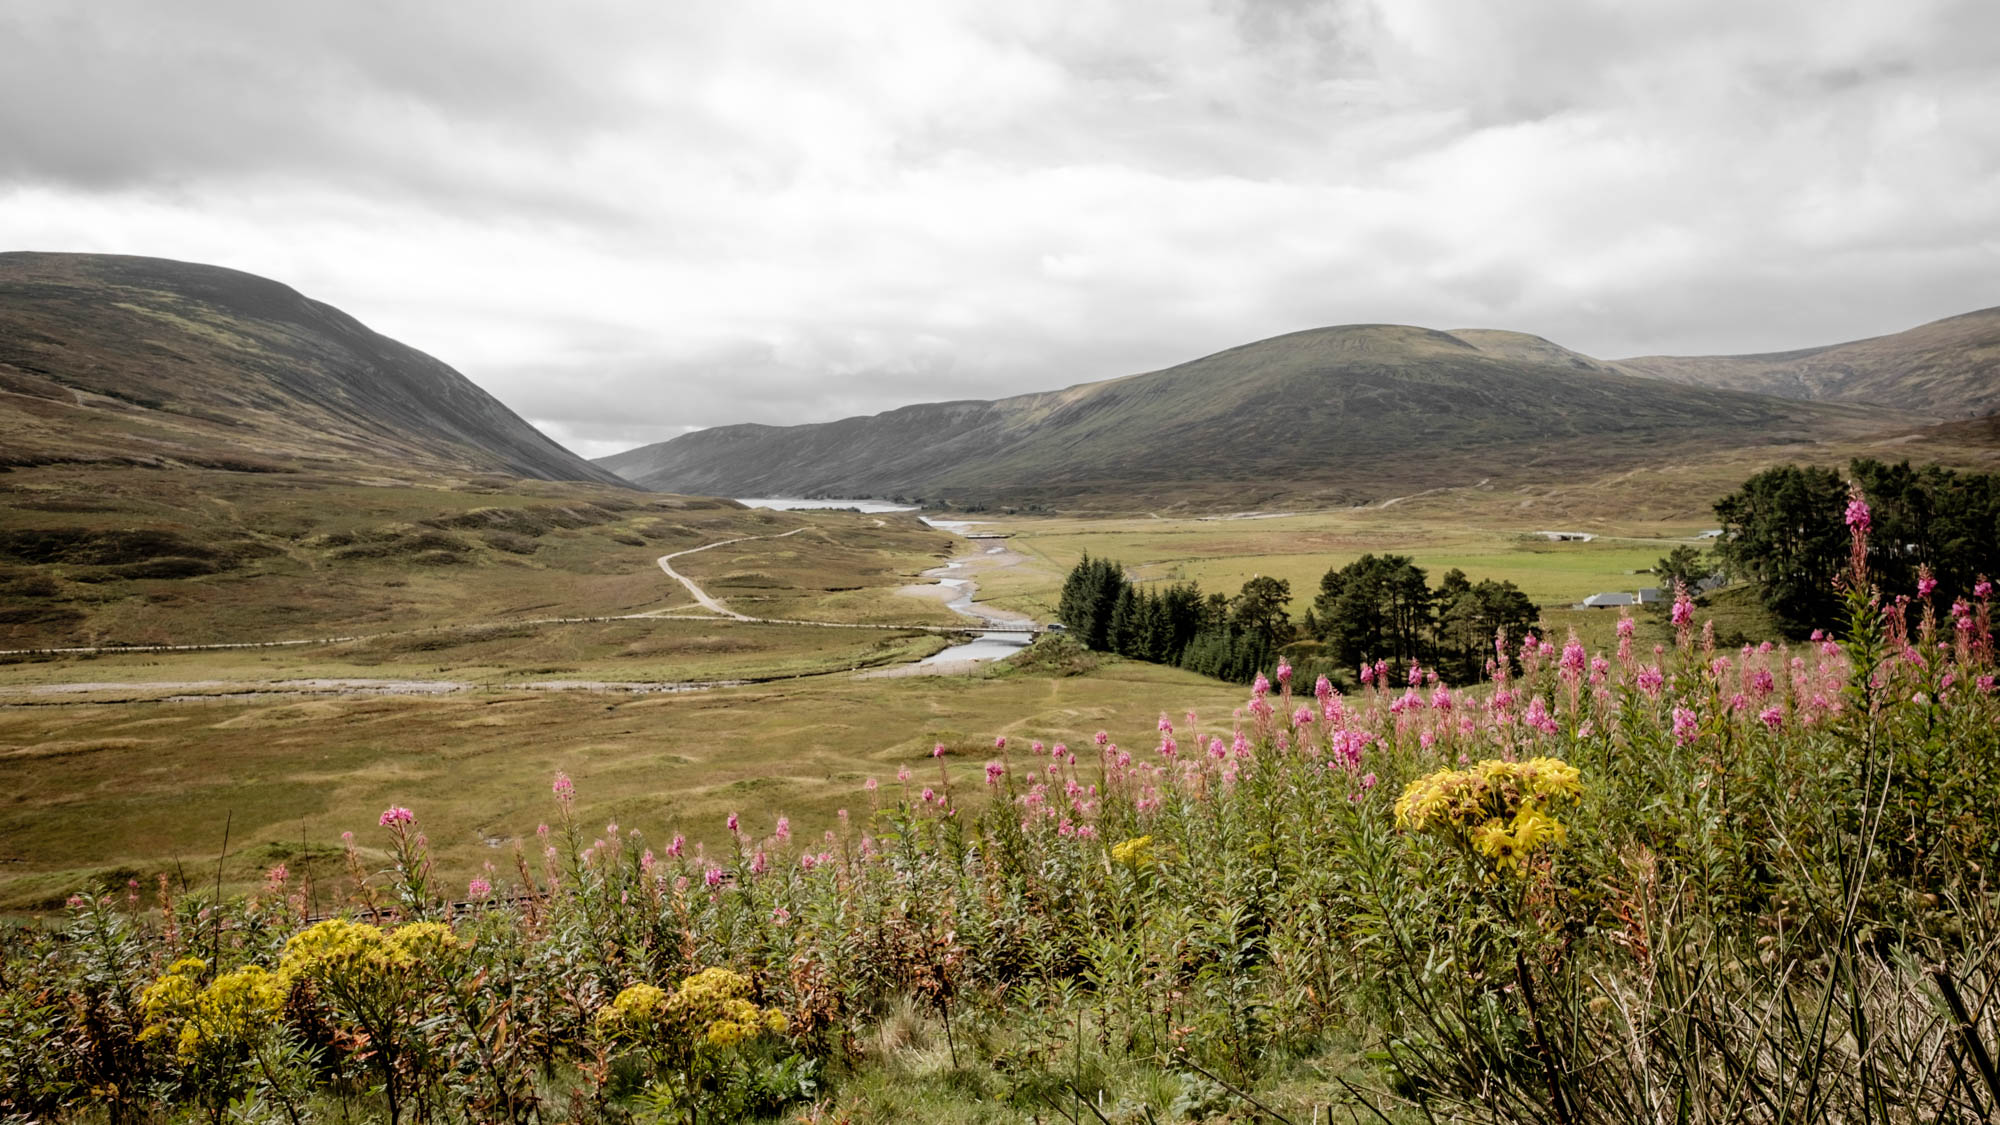 Schottland am Cairngorms National Park